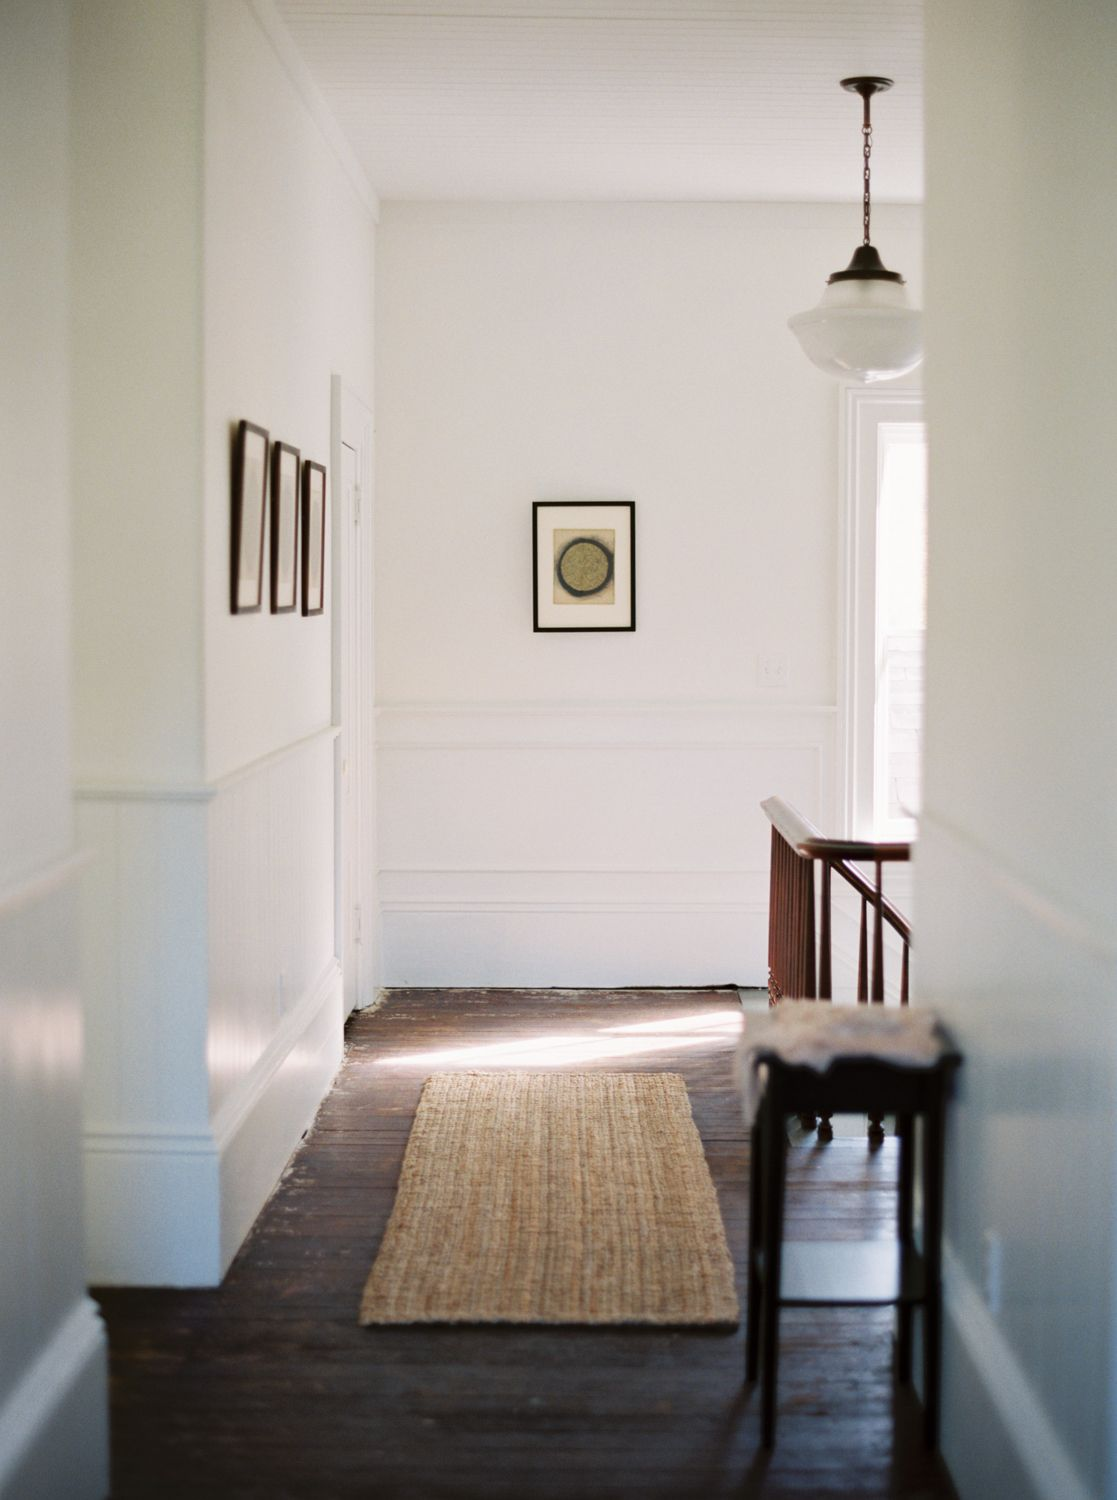 Hallway rug ideas  Havens South Designs  loves the simple inexpensive look of high